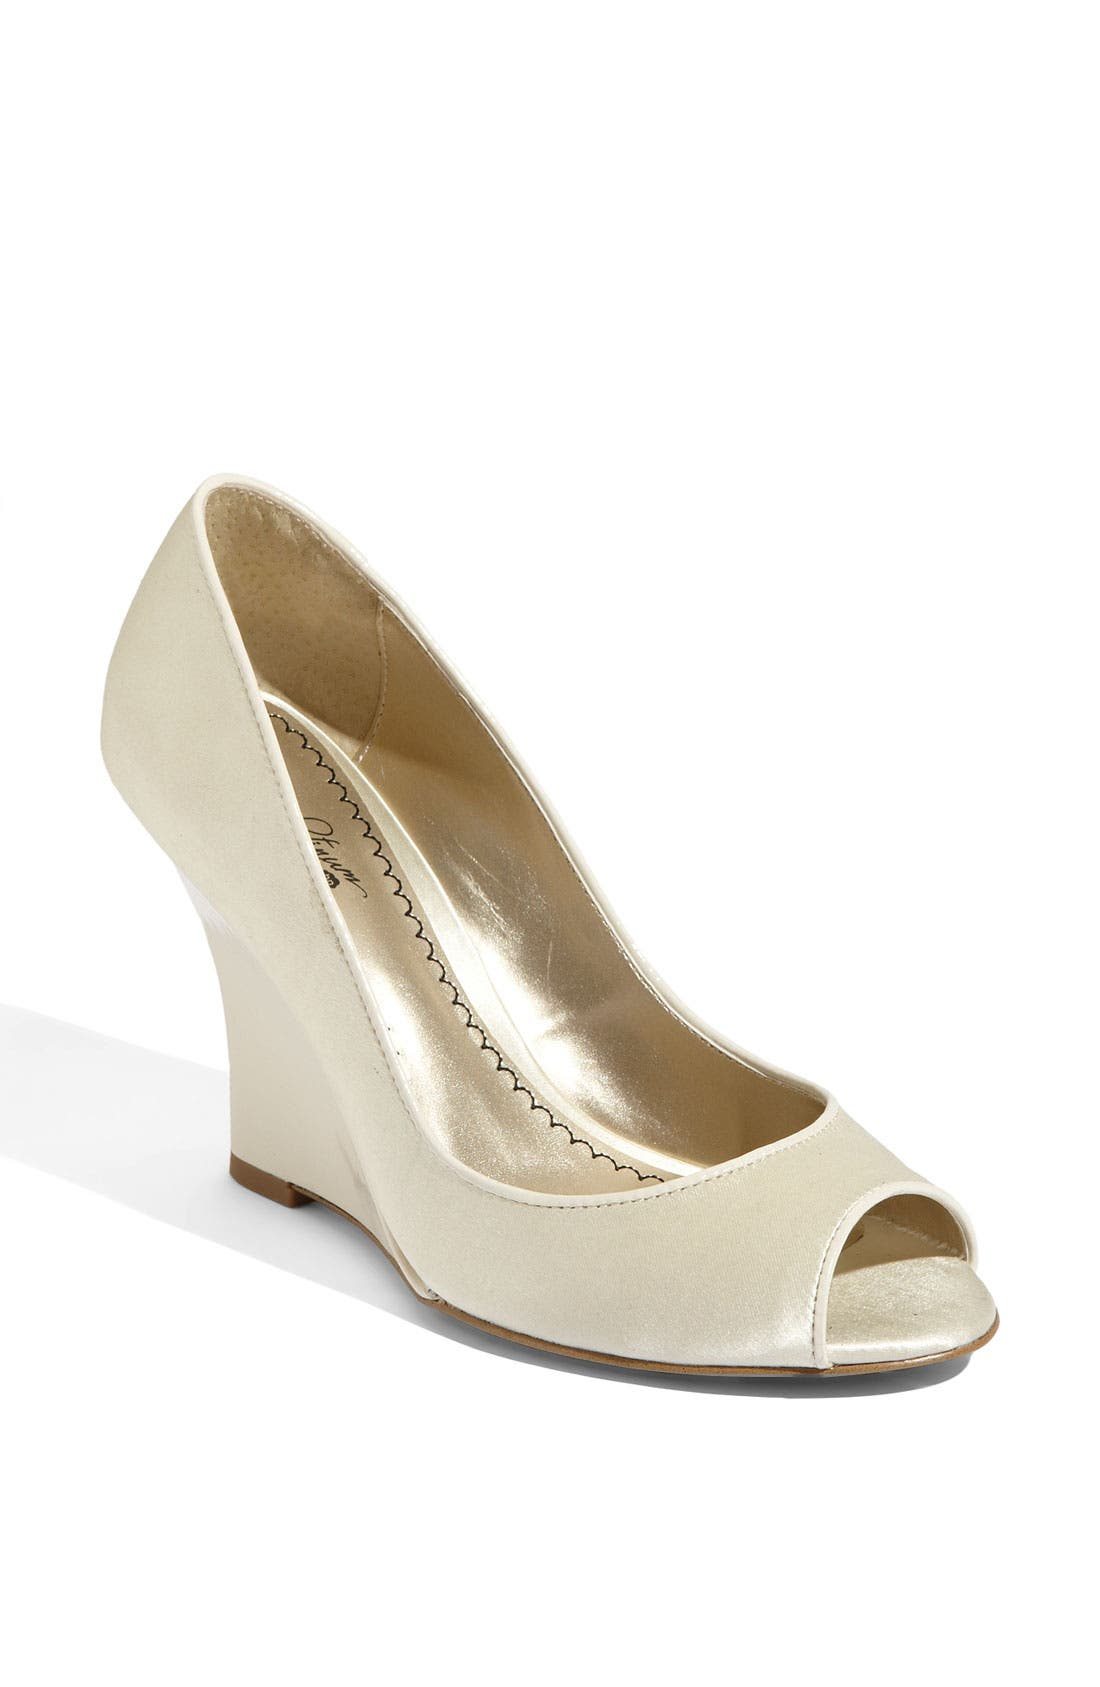 Alternate Image 1 Selected - BP. 'Fae' Satin Wedge Pump